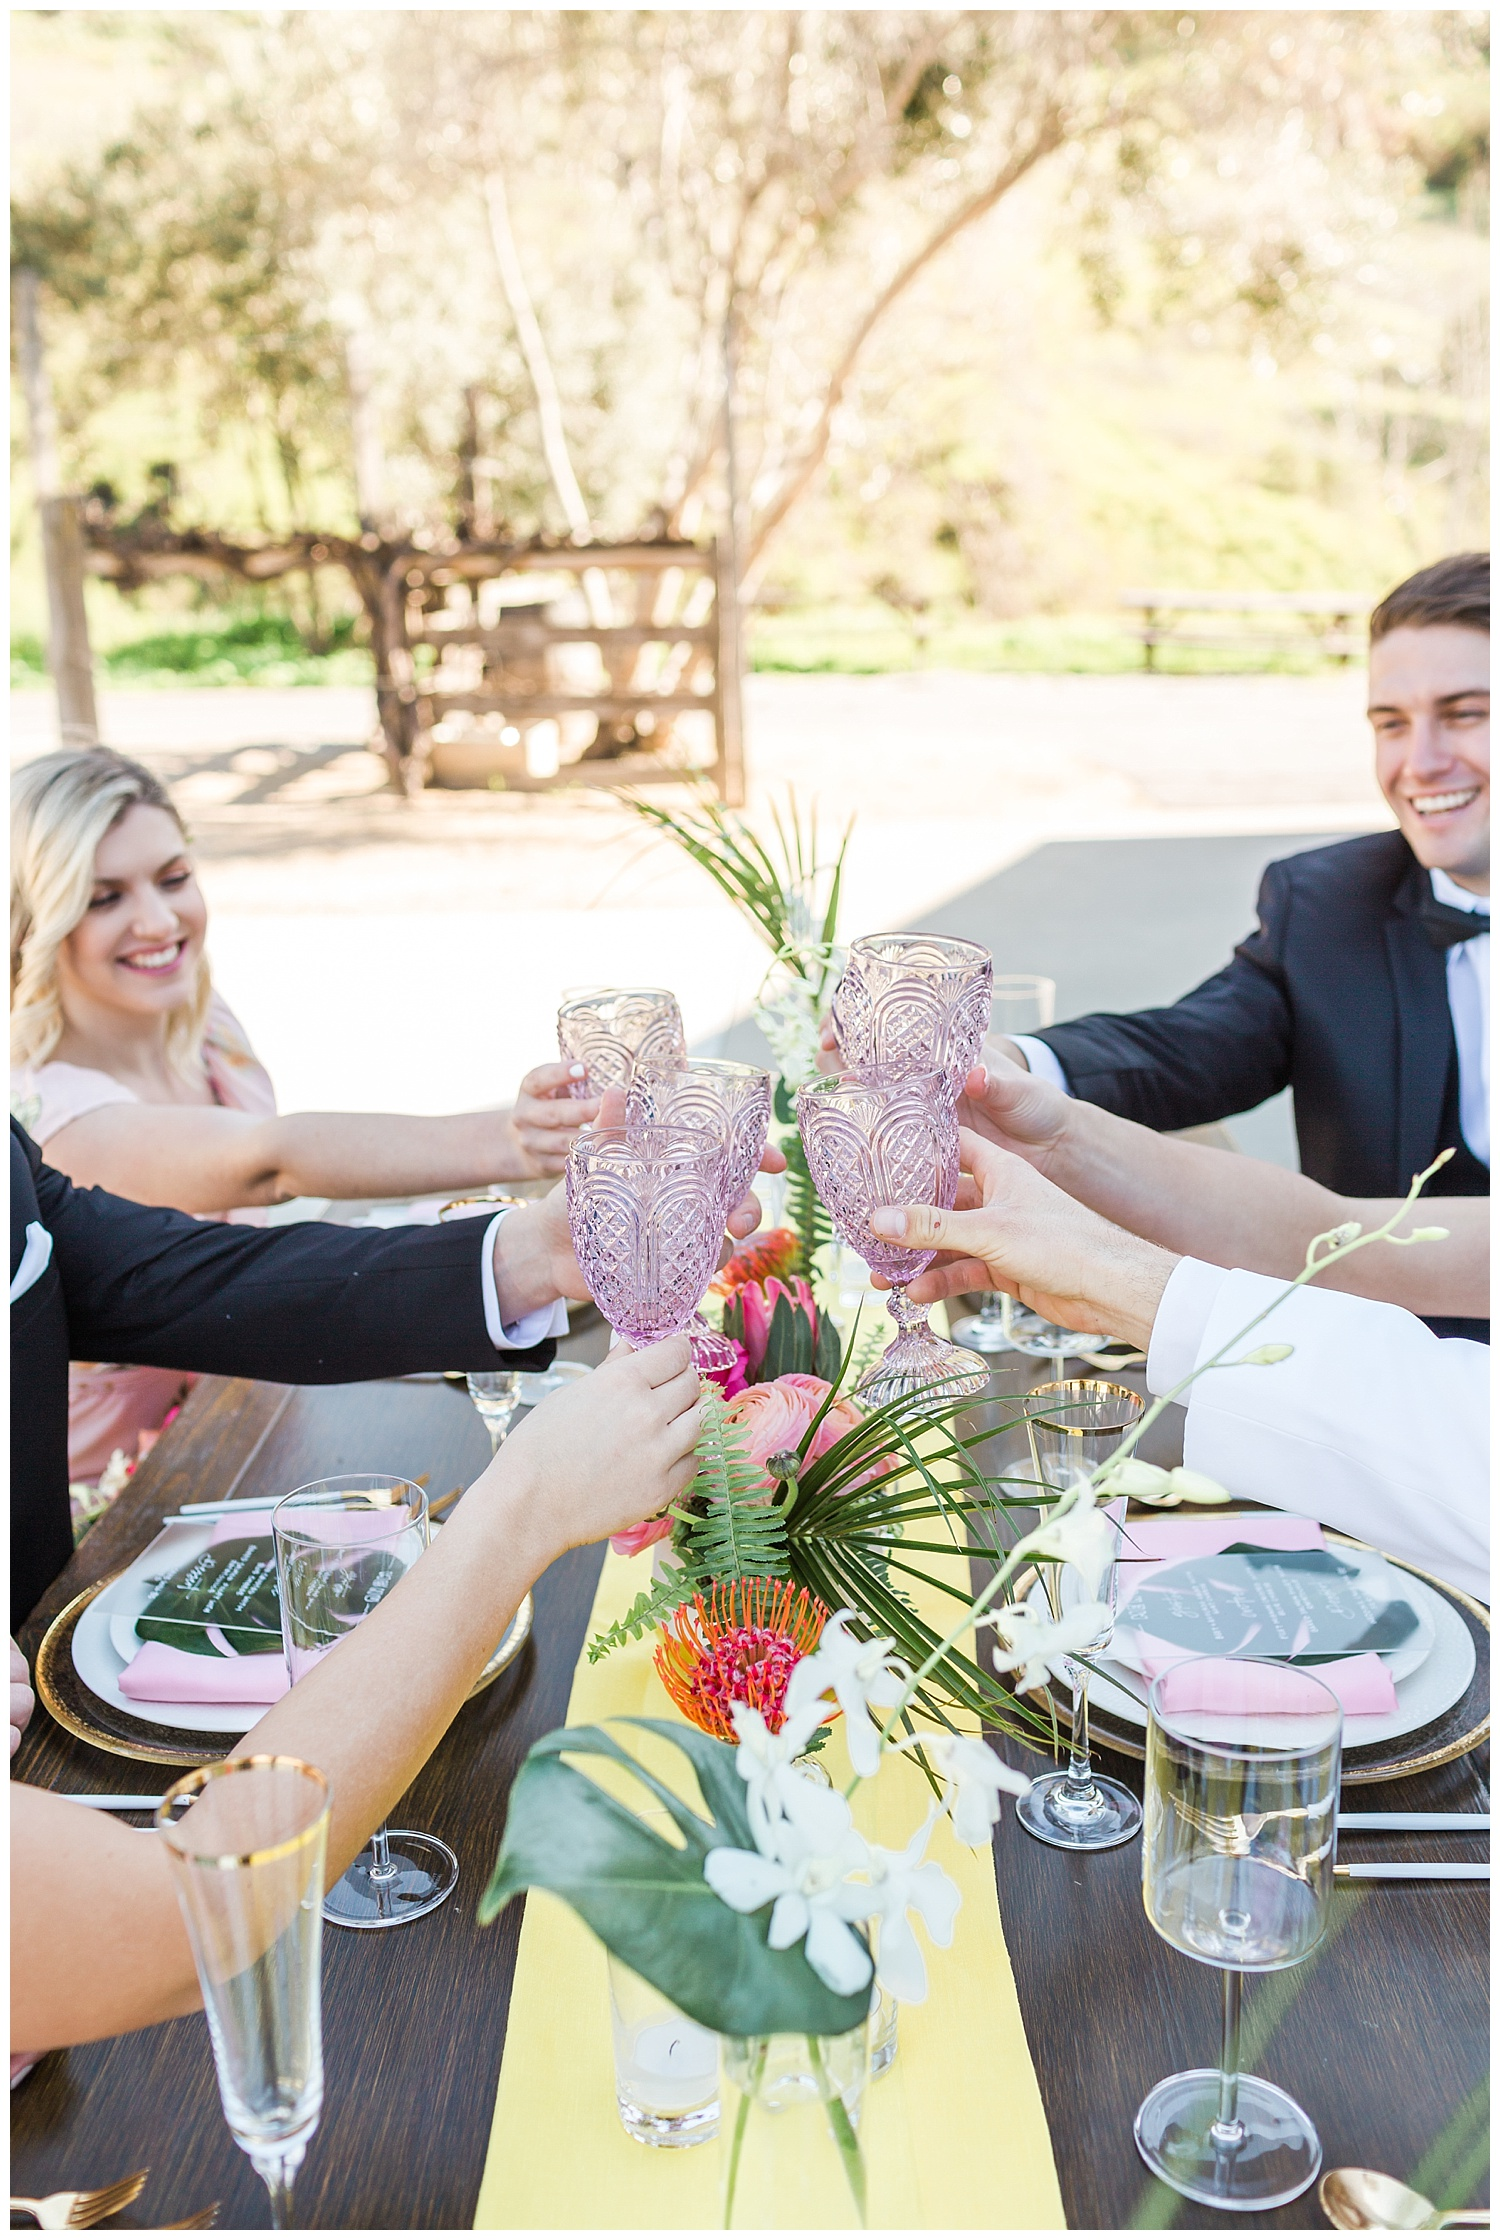 Cheers-wedding-party-all-about-events-rentals.jpg